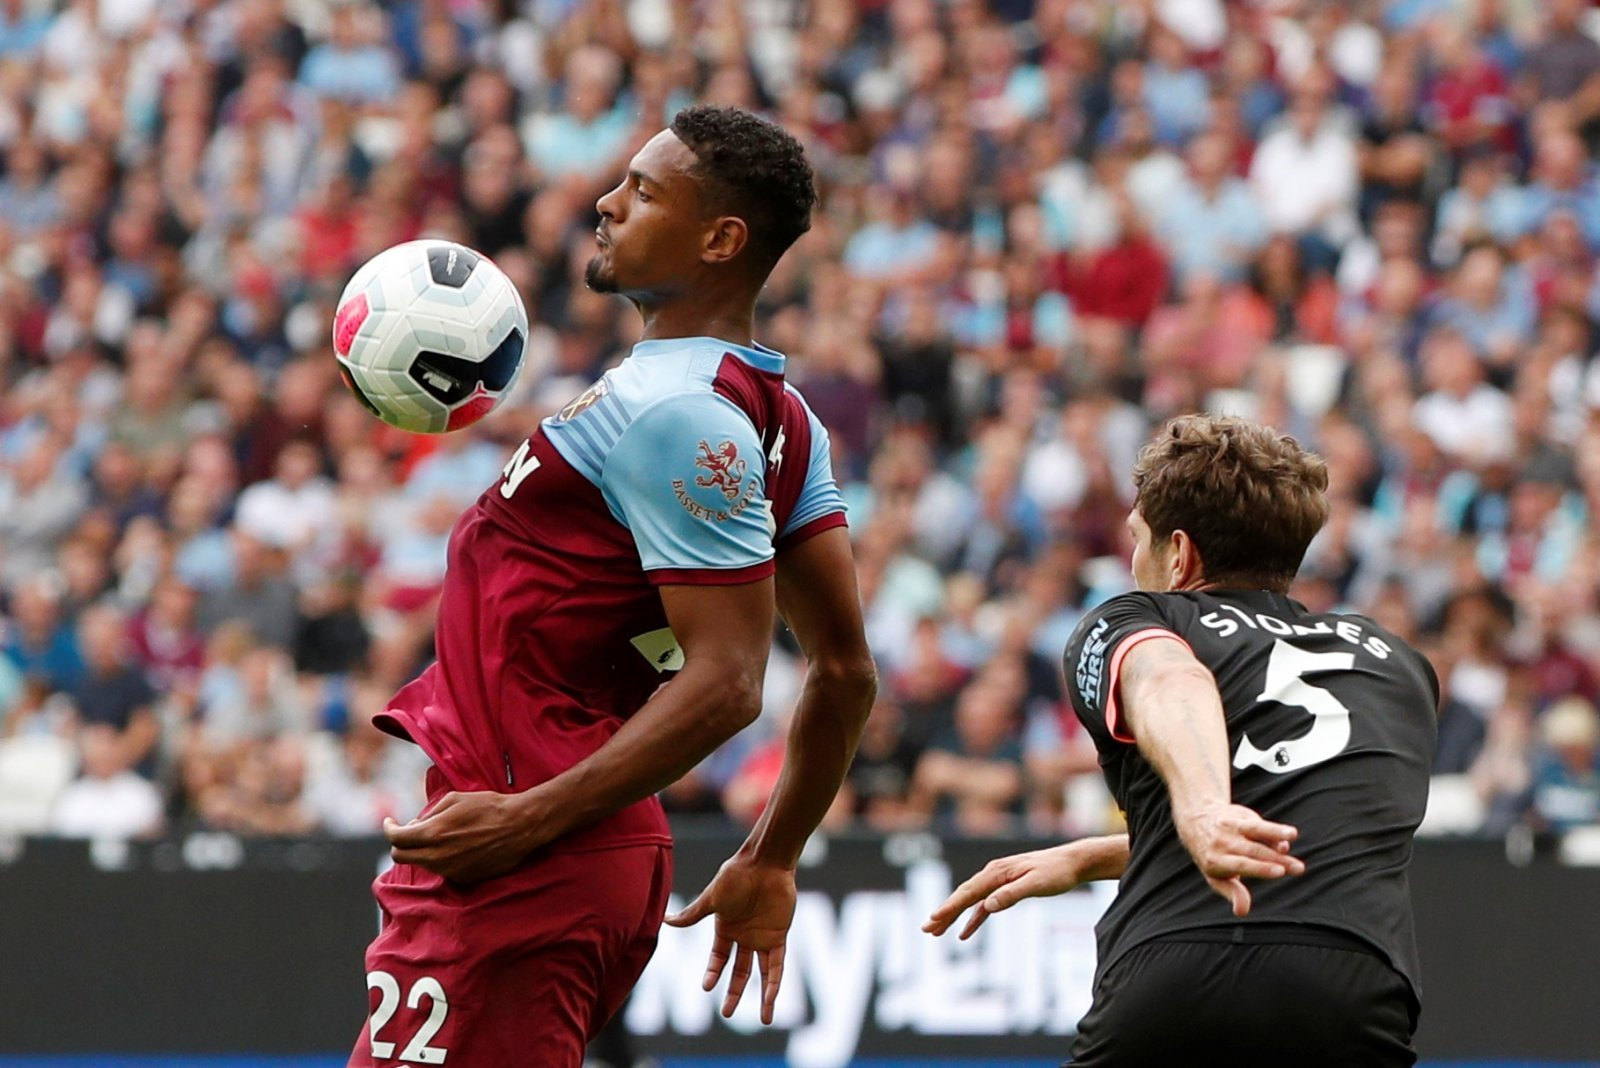 Unsung Hero: Sebastien Haller looked a real presence despite West Ham's trouncing